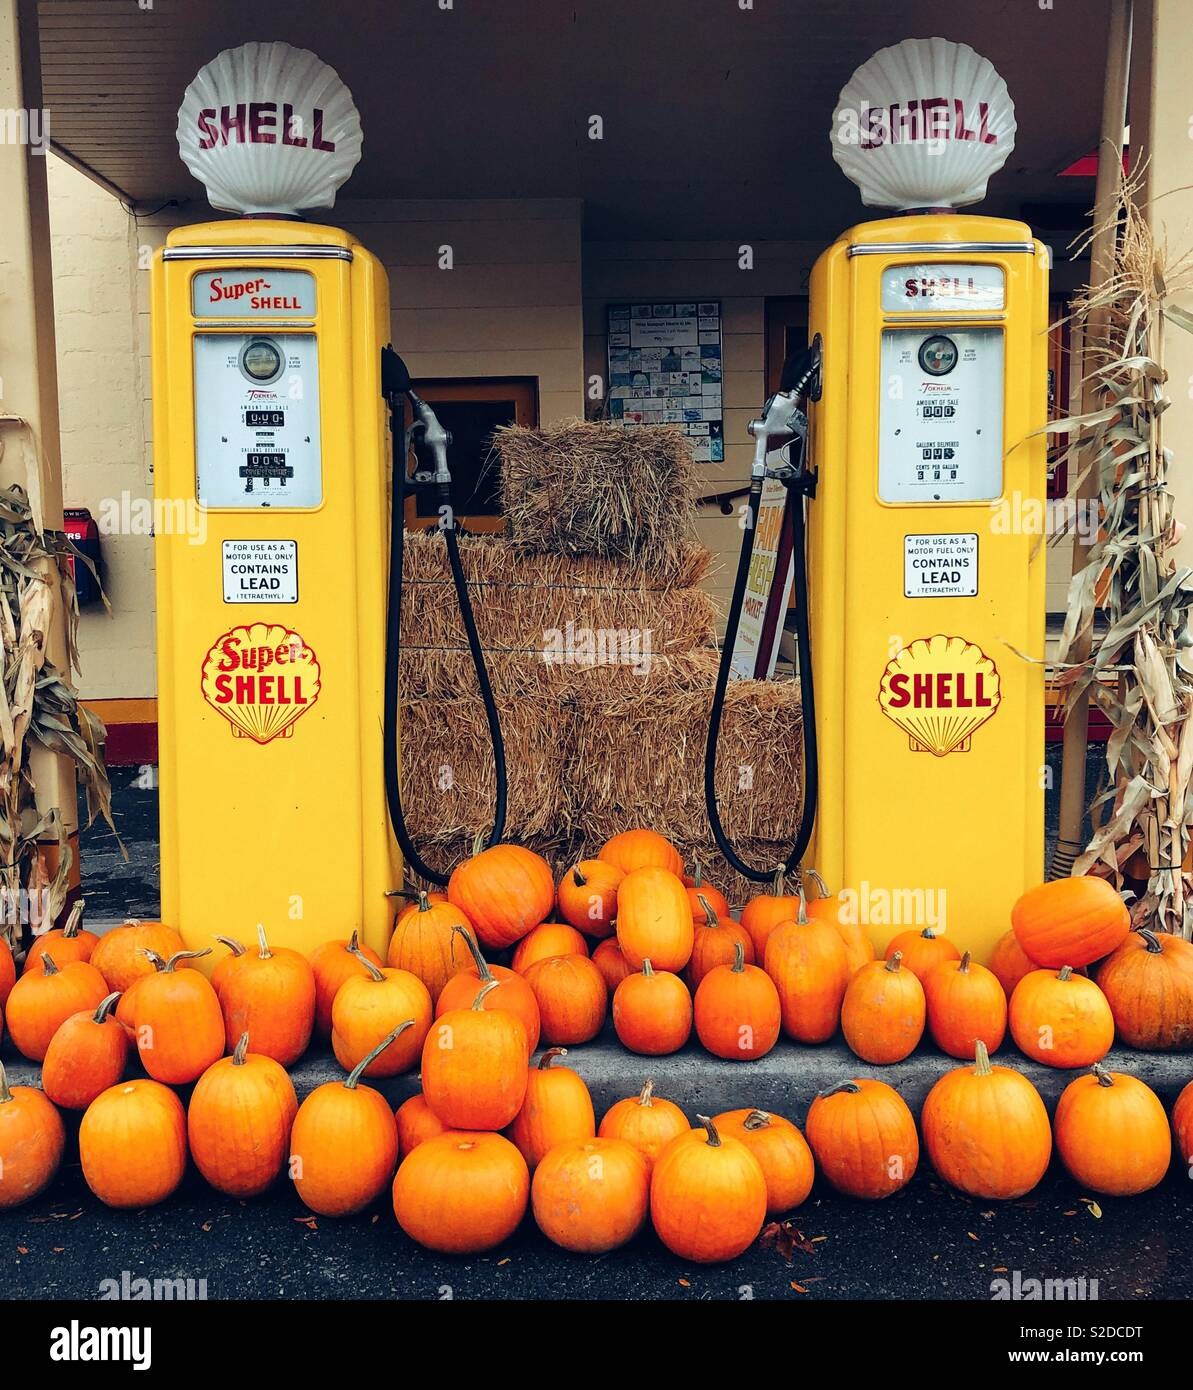 Vintage restored Shell gas station in Issaquah WA decorated with orange pumpkins - Stock Image